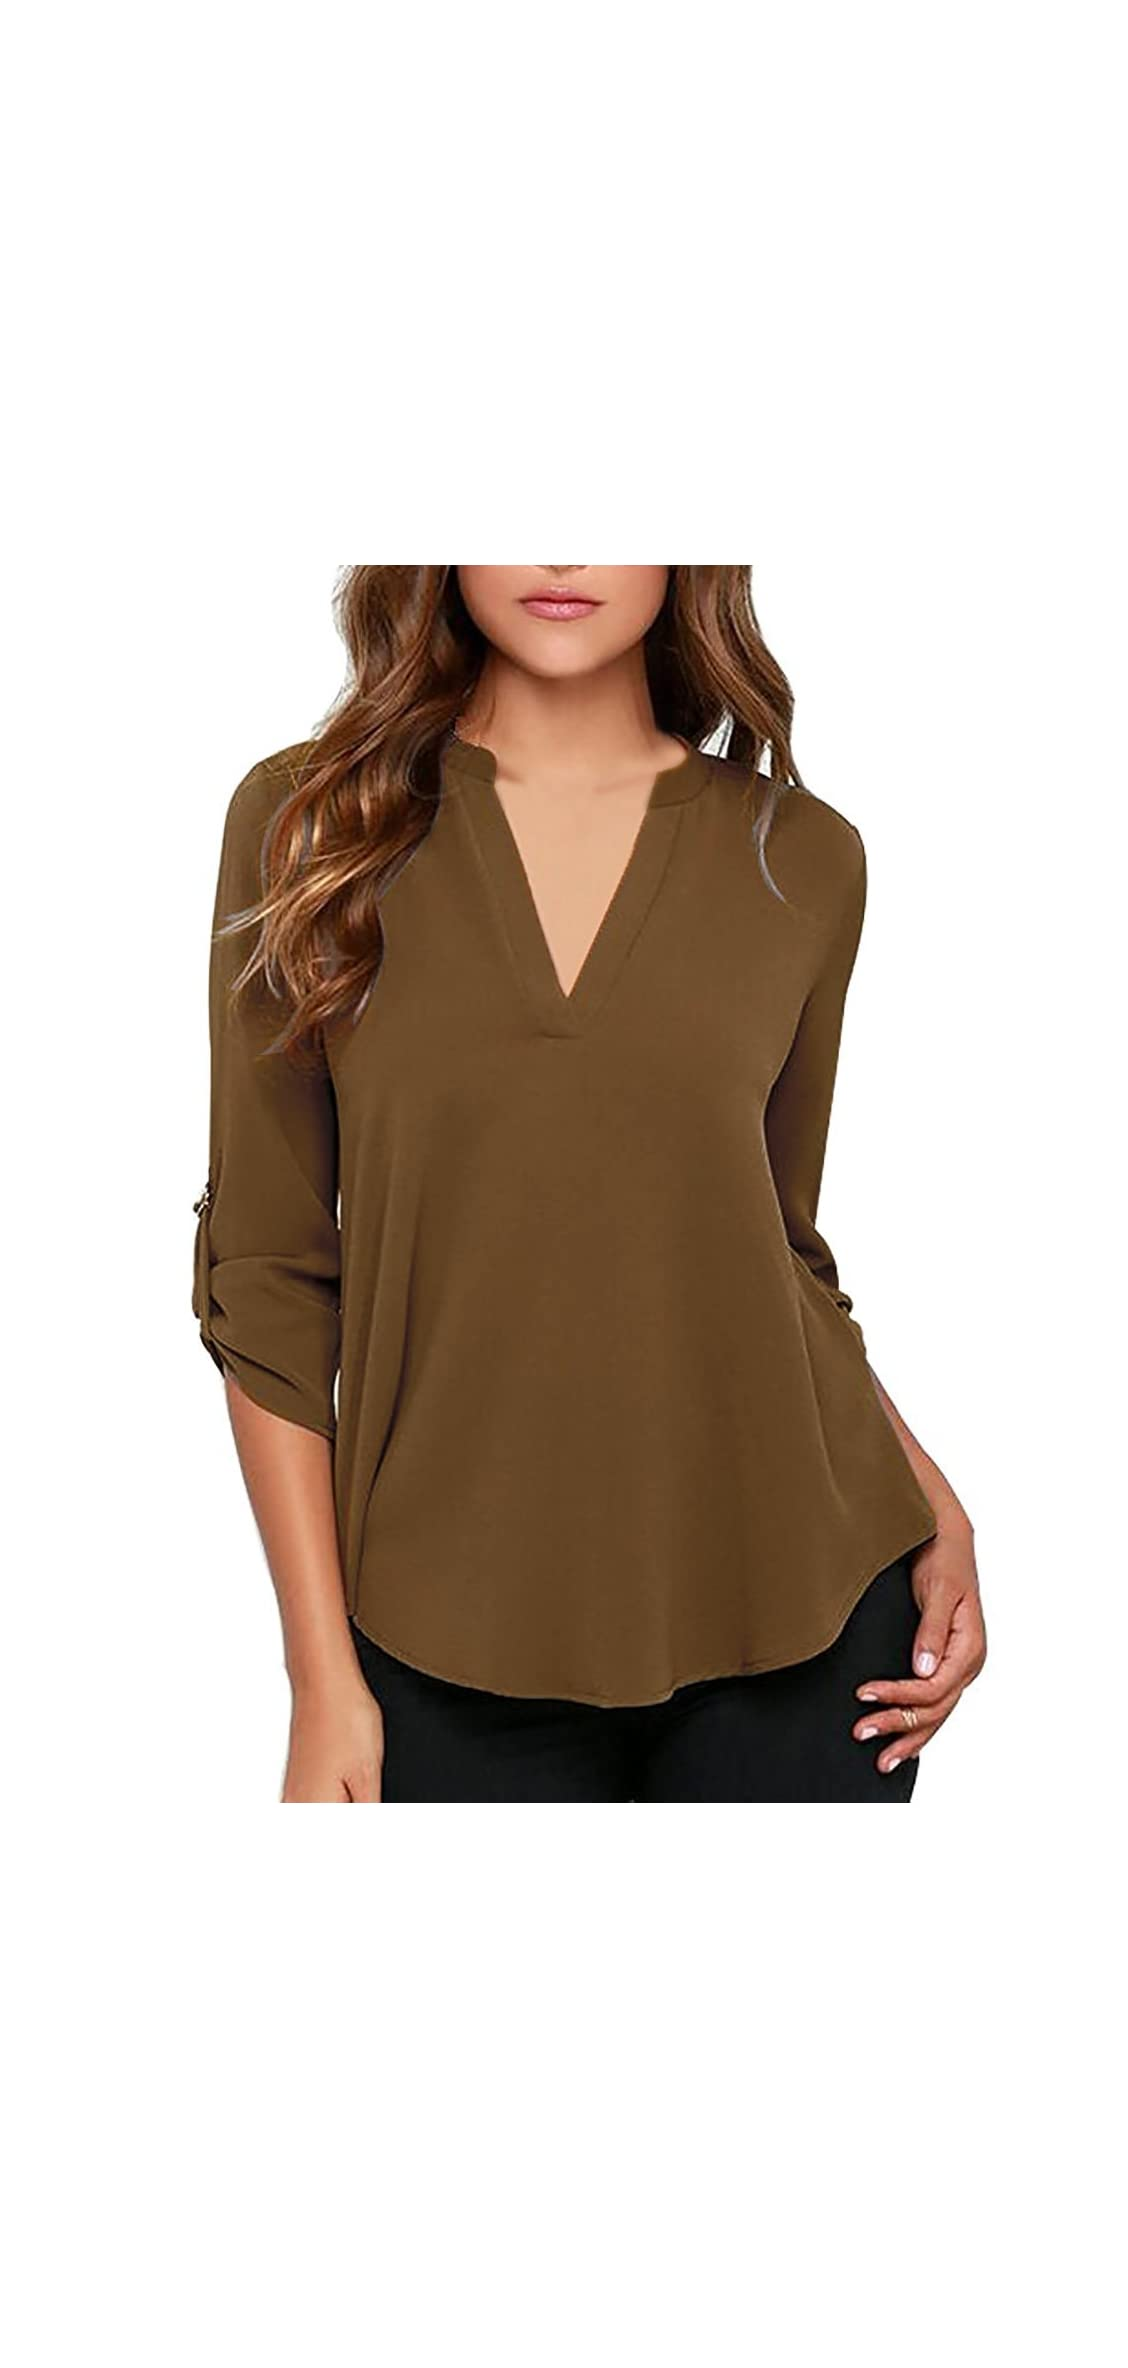 Women's Casual V Neck Cuffed Sleeves Solid Chiffon Top